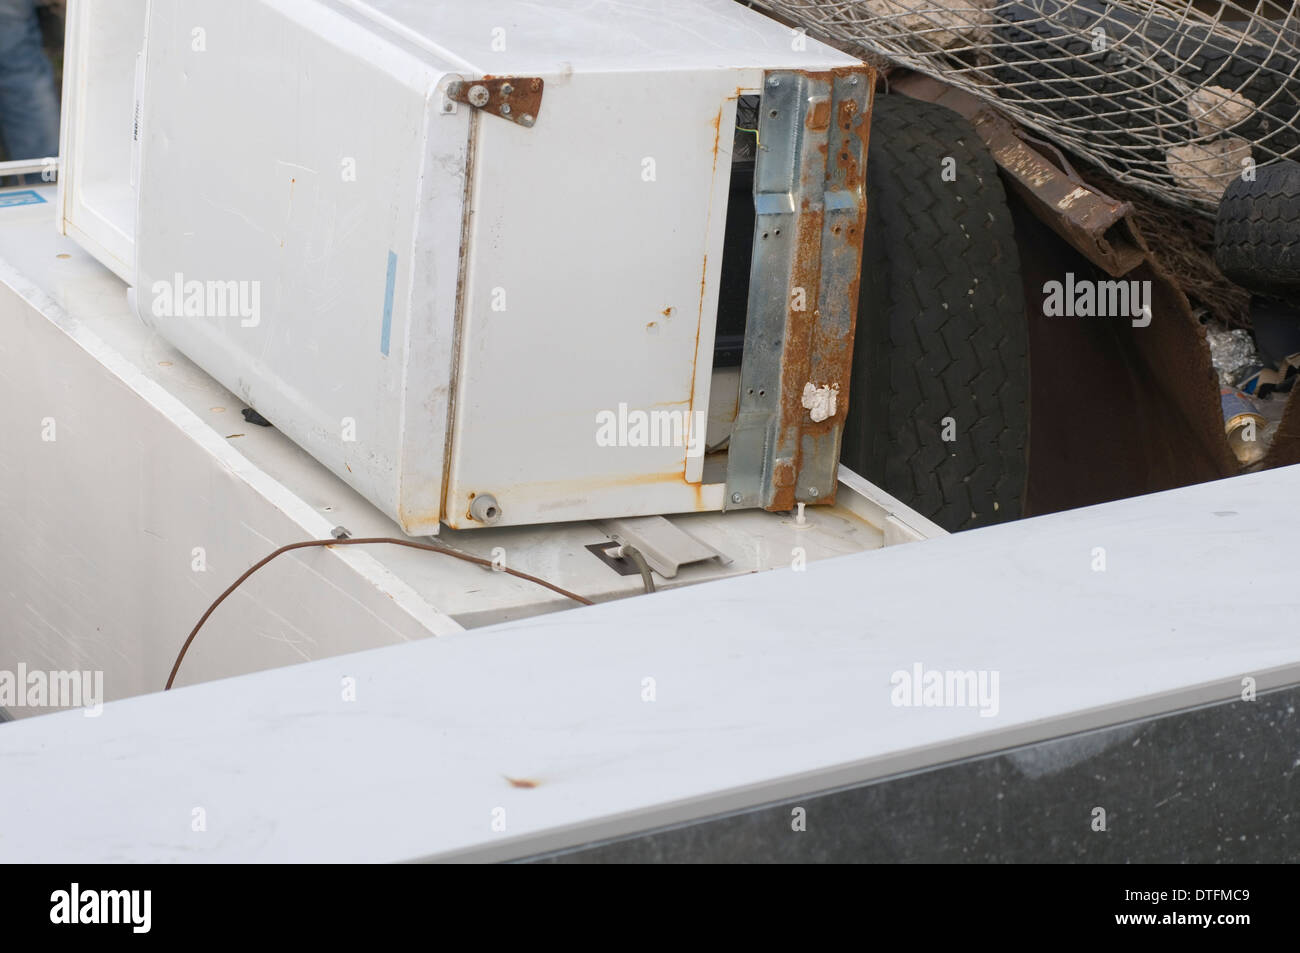 old fridge fridges disposed of at roadside fly tipped tipping tippers tippers degassed de gassed gassing degassing white goods o - Stock Image